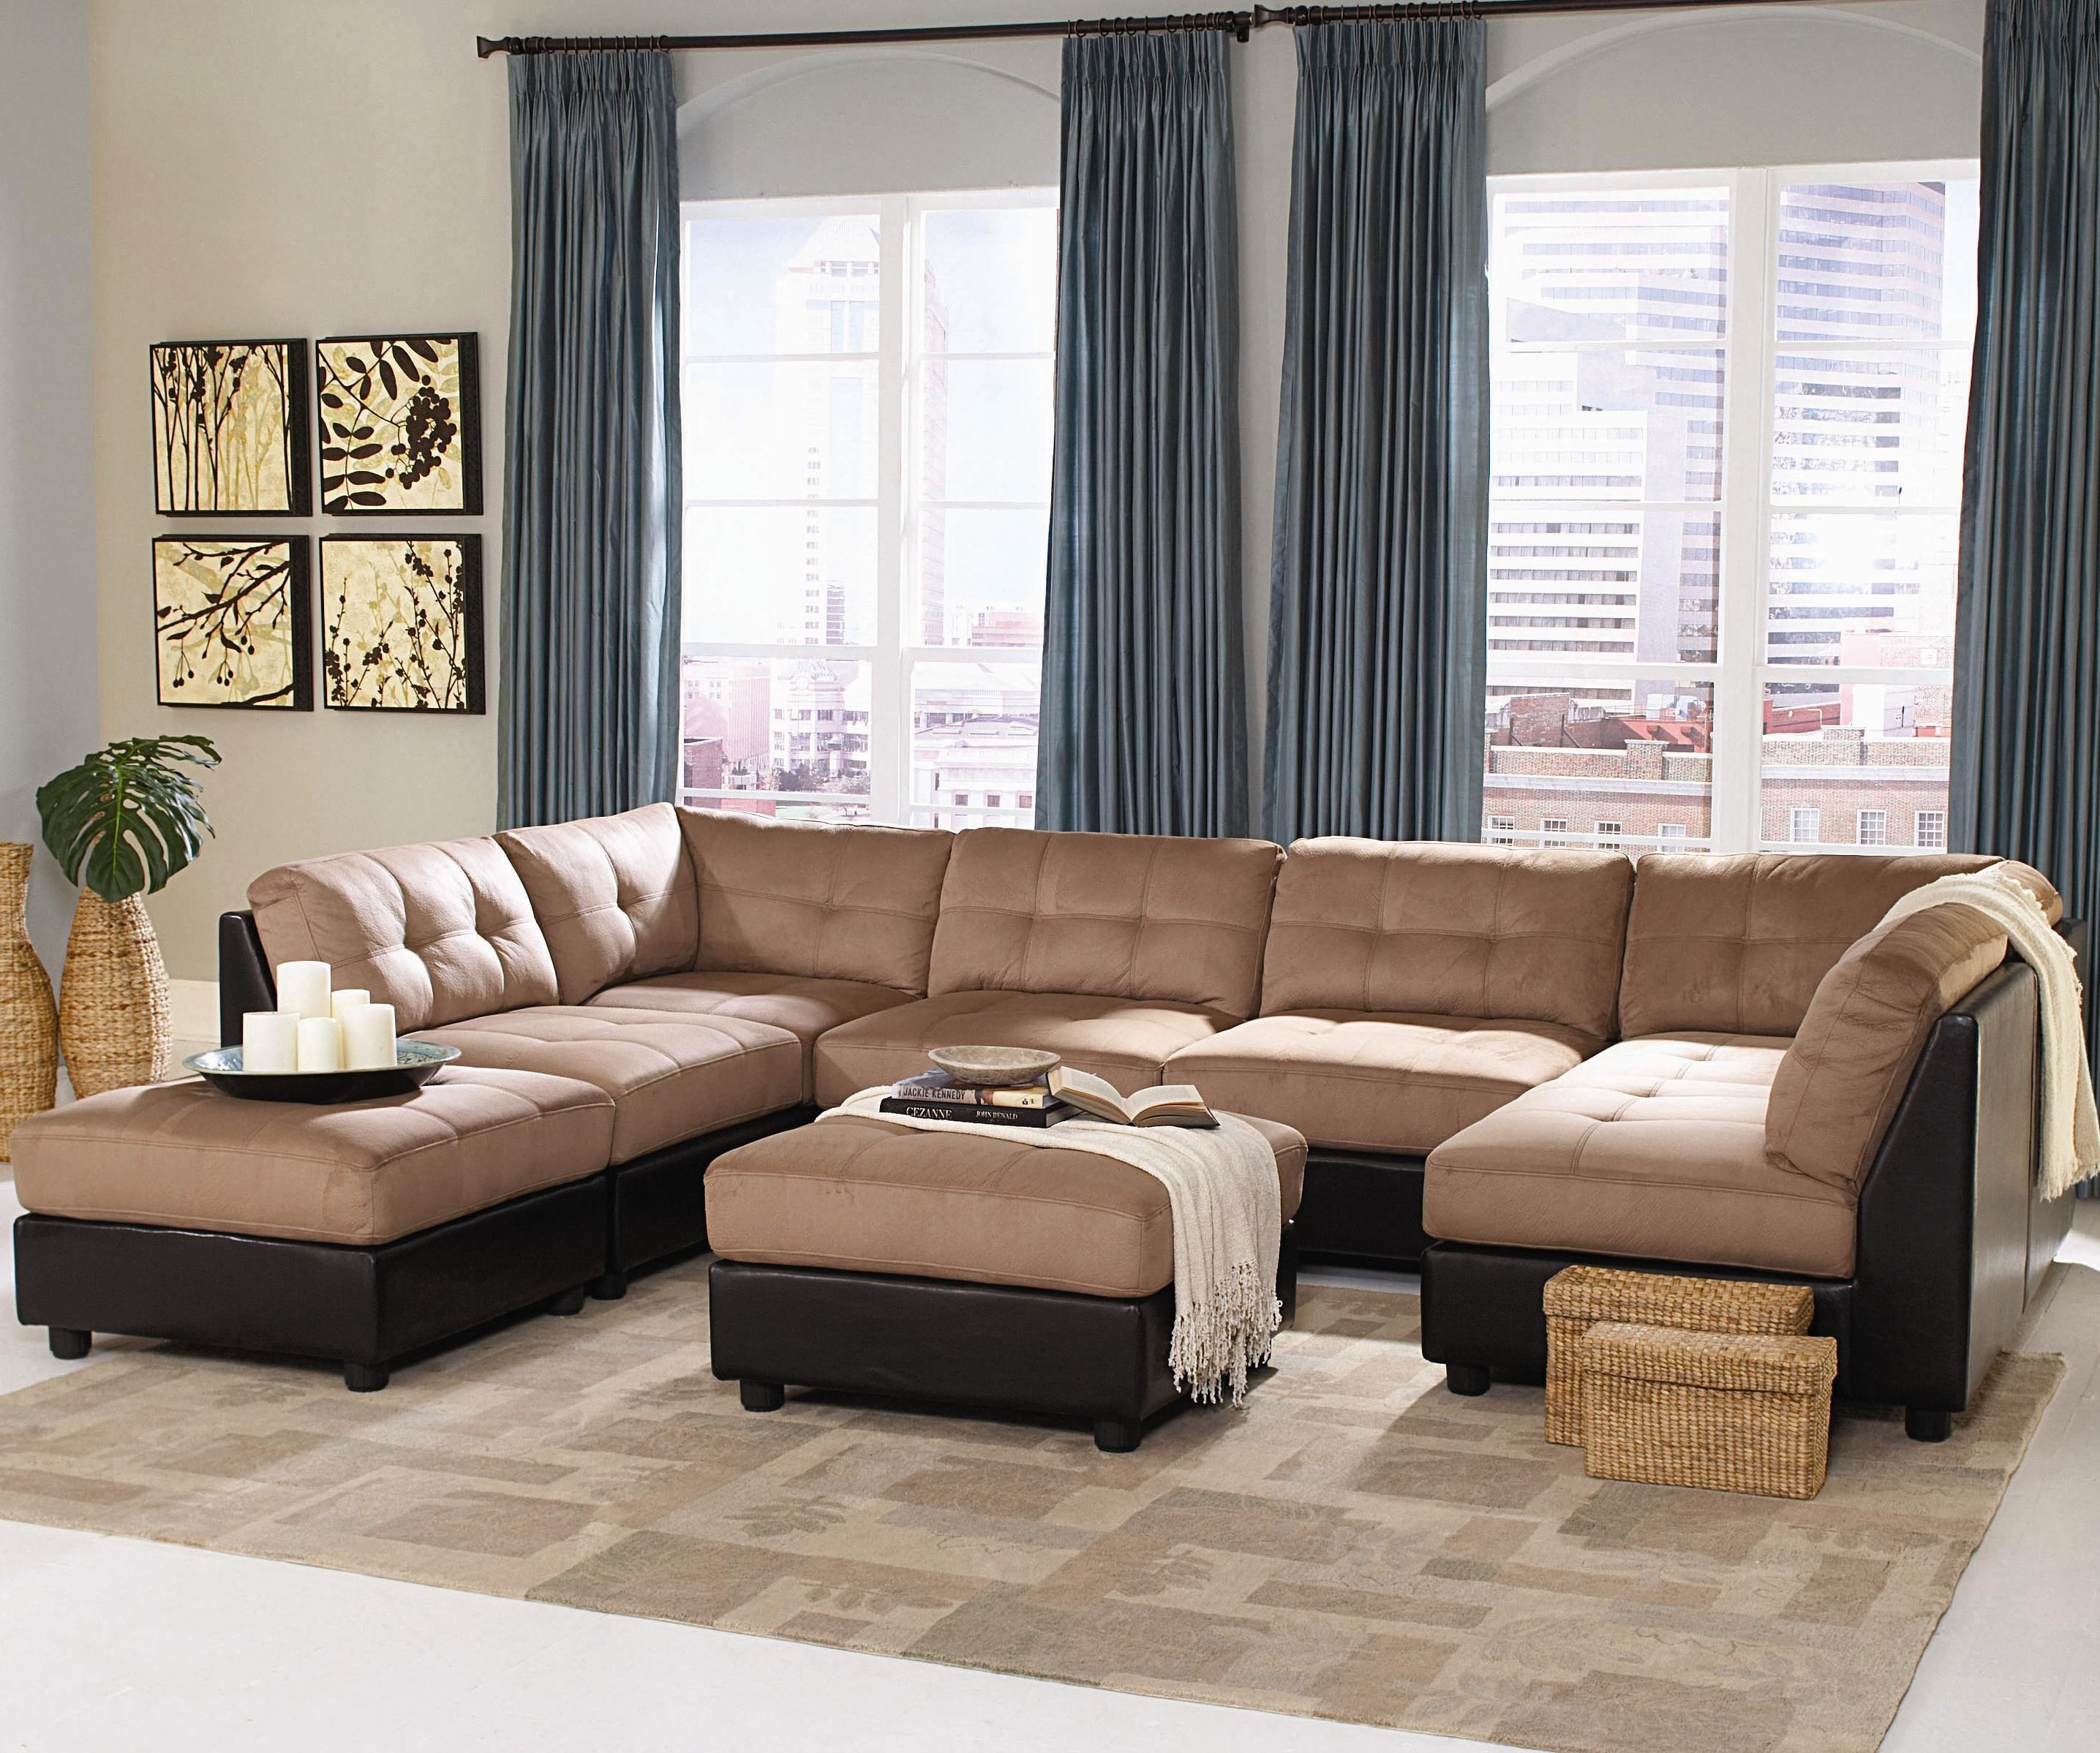 20 top traditional sectional sofas living room furniture sofa ideas. Black Bedroom Furniture Sets. Home Design Ideas